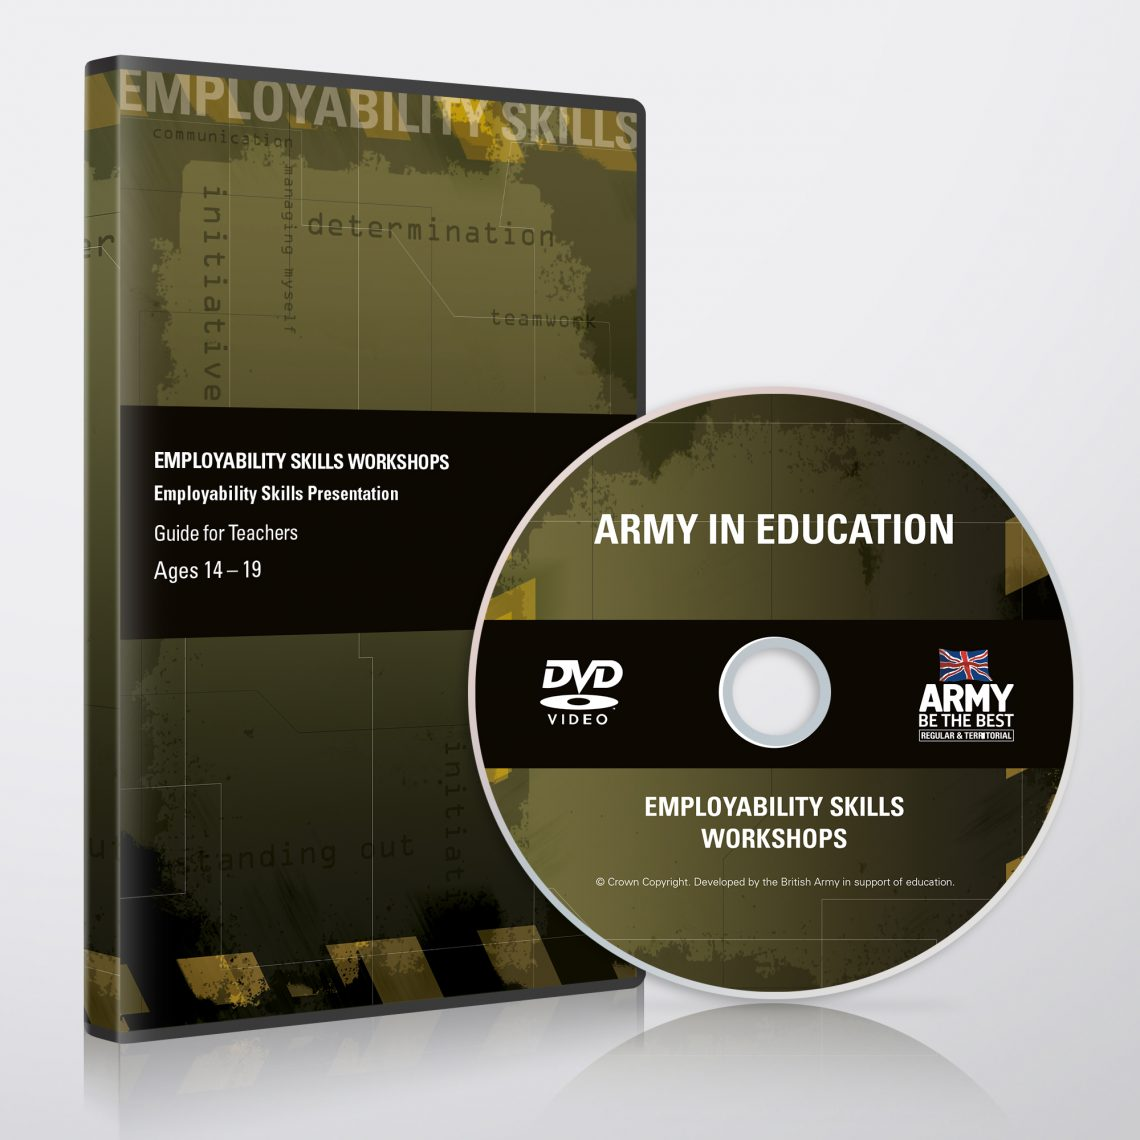 Army DVD Cover Design